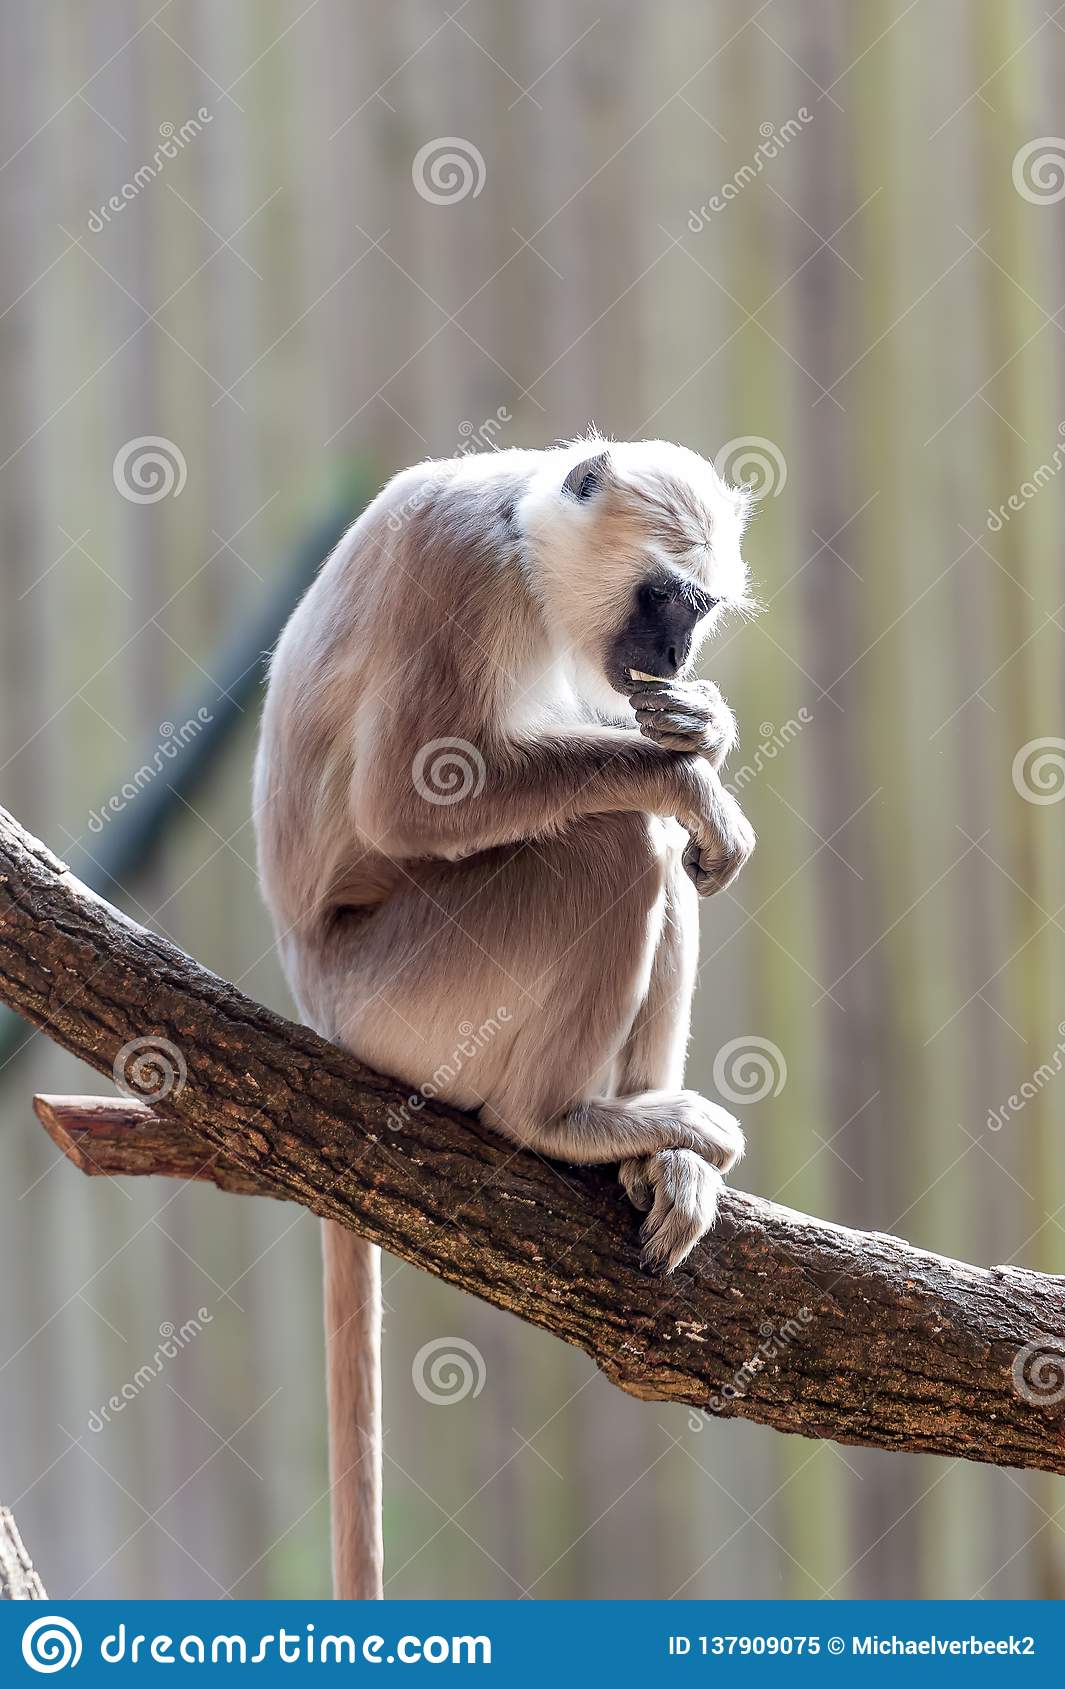 Hanuman langur in the tree thinking